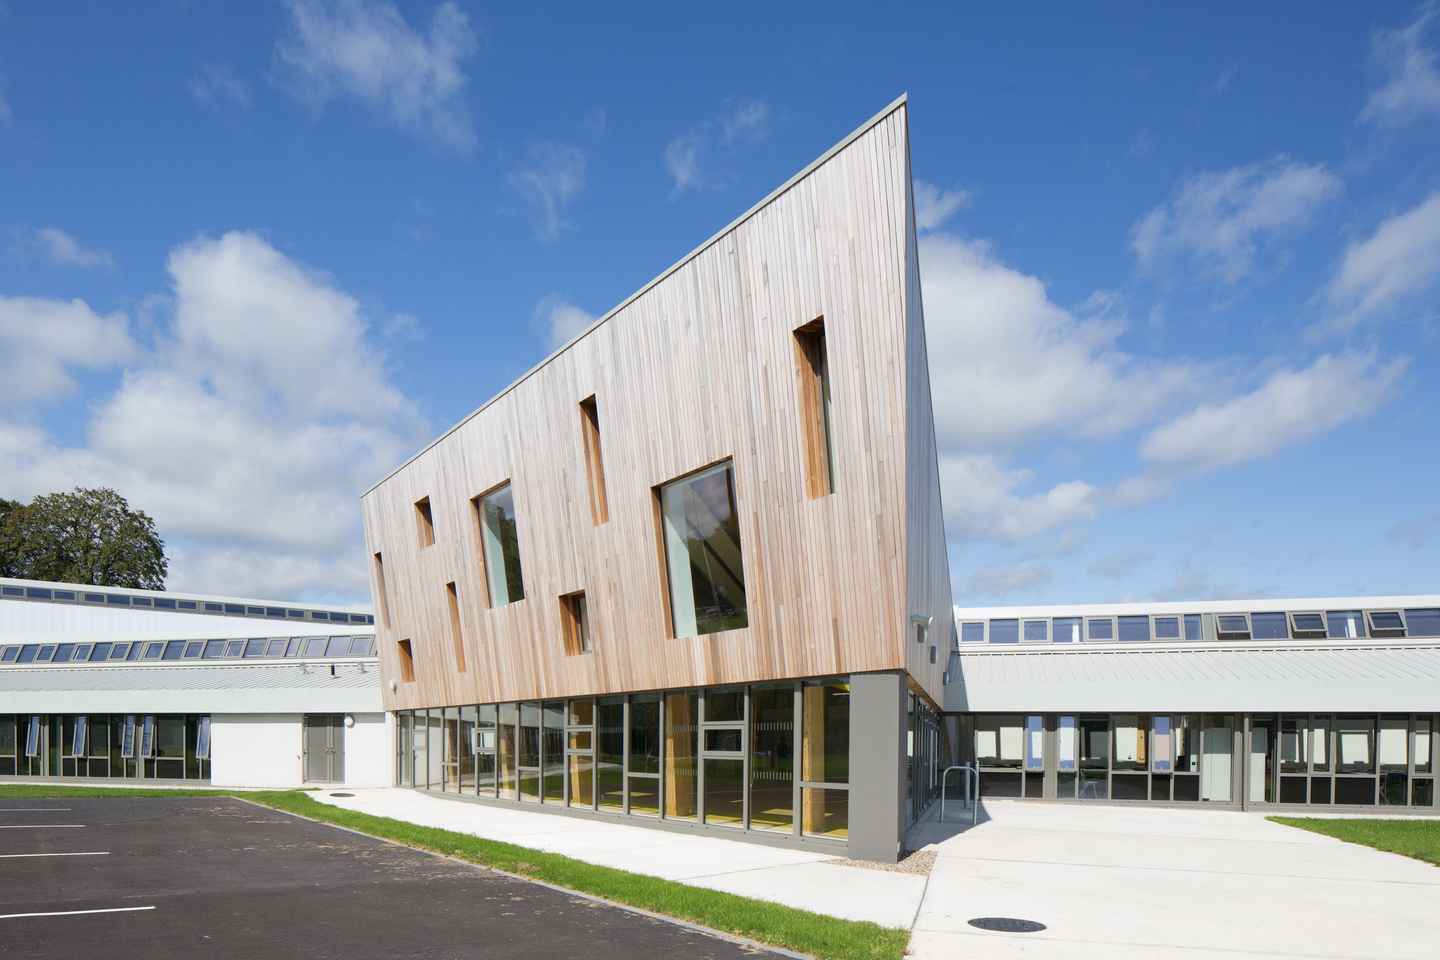 St Anne's Community College is home to more than 500 students